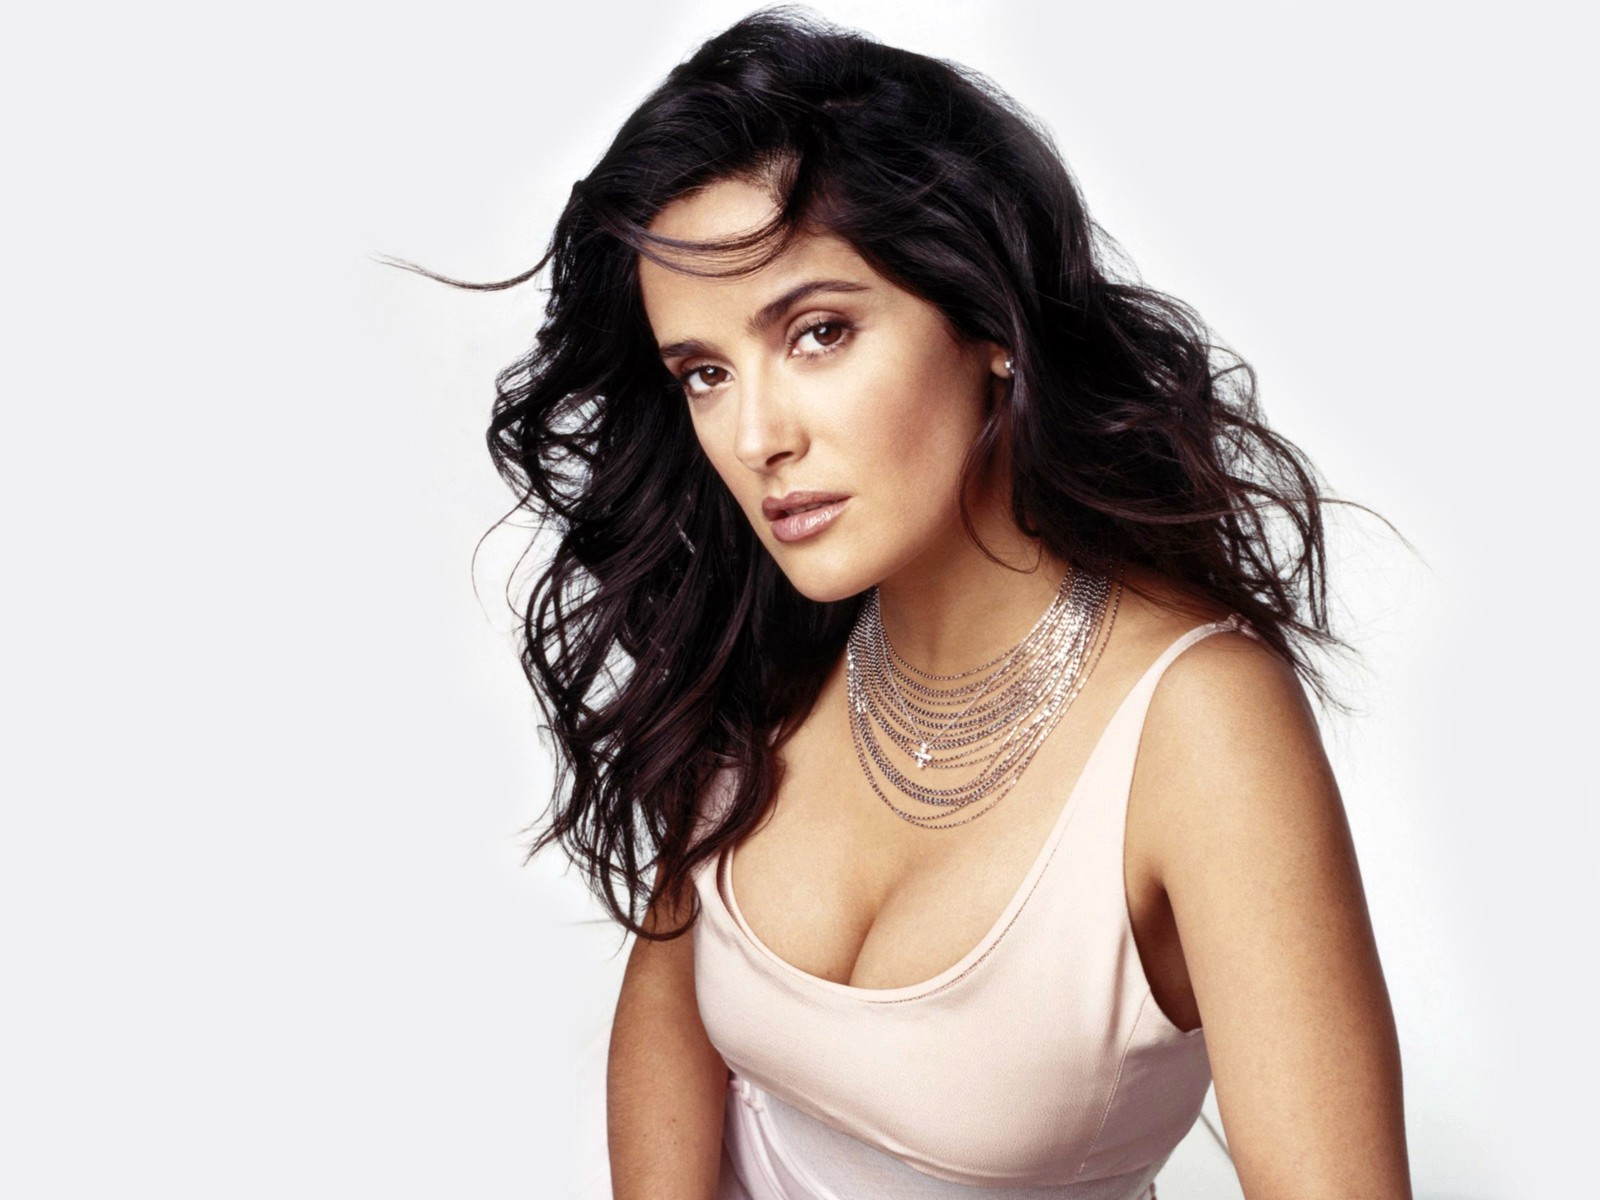 Salma Hayek New 2010 257.87 Kb